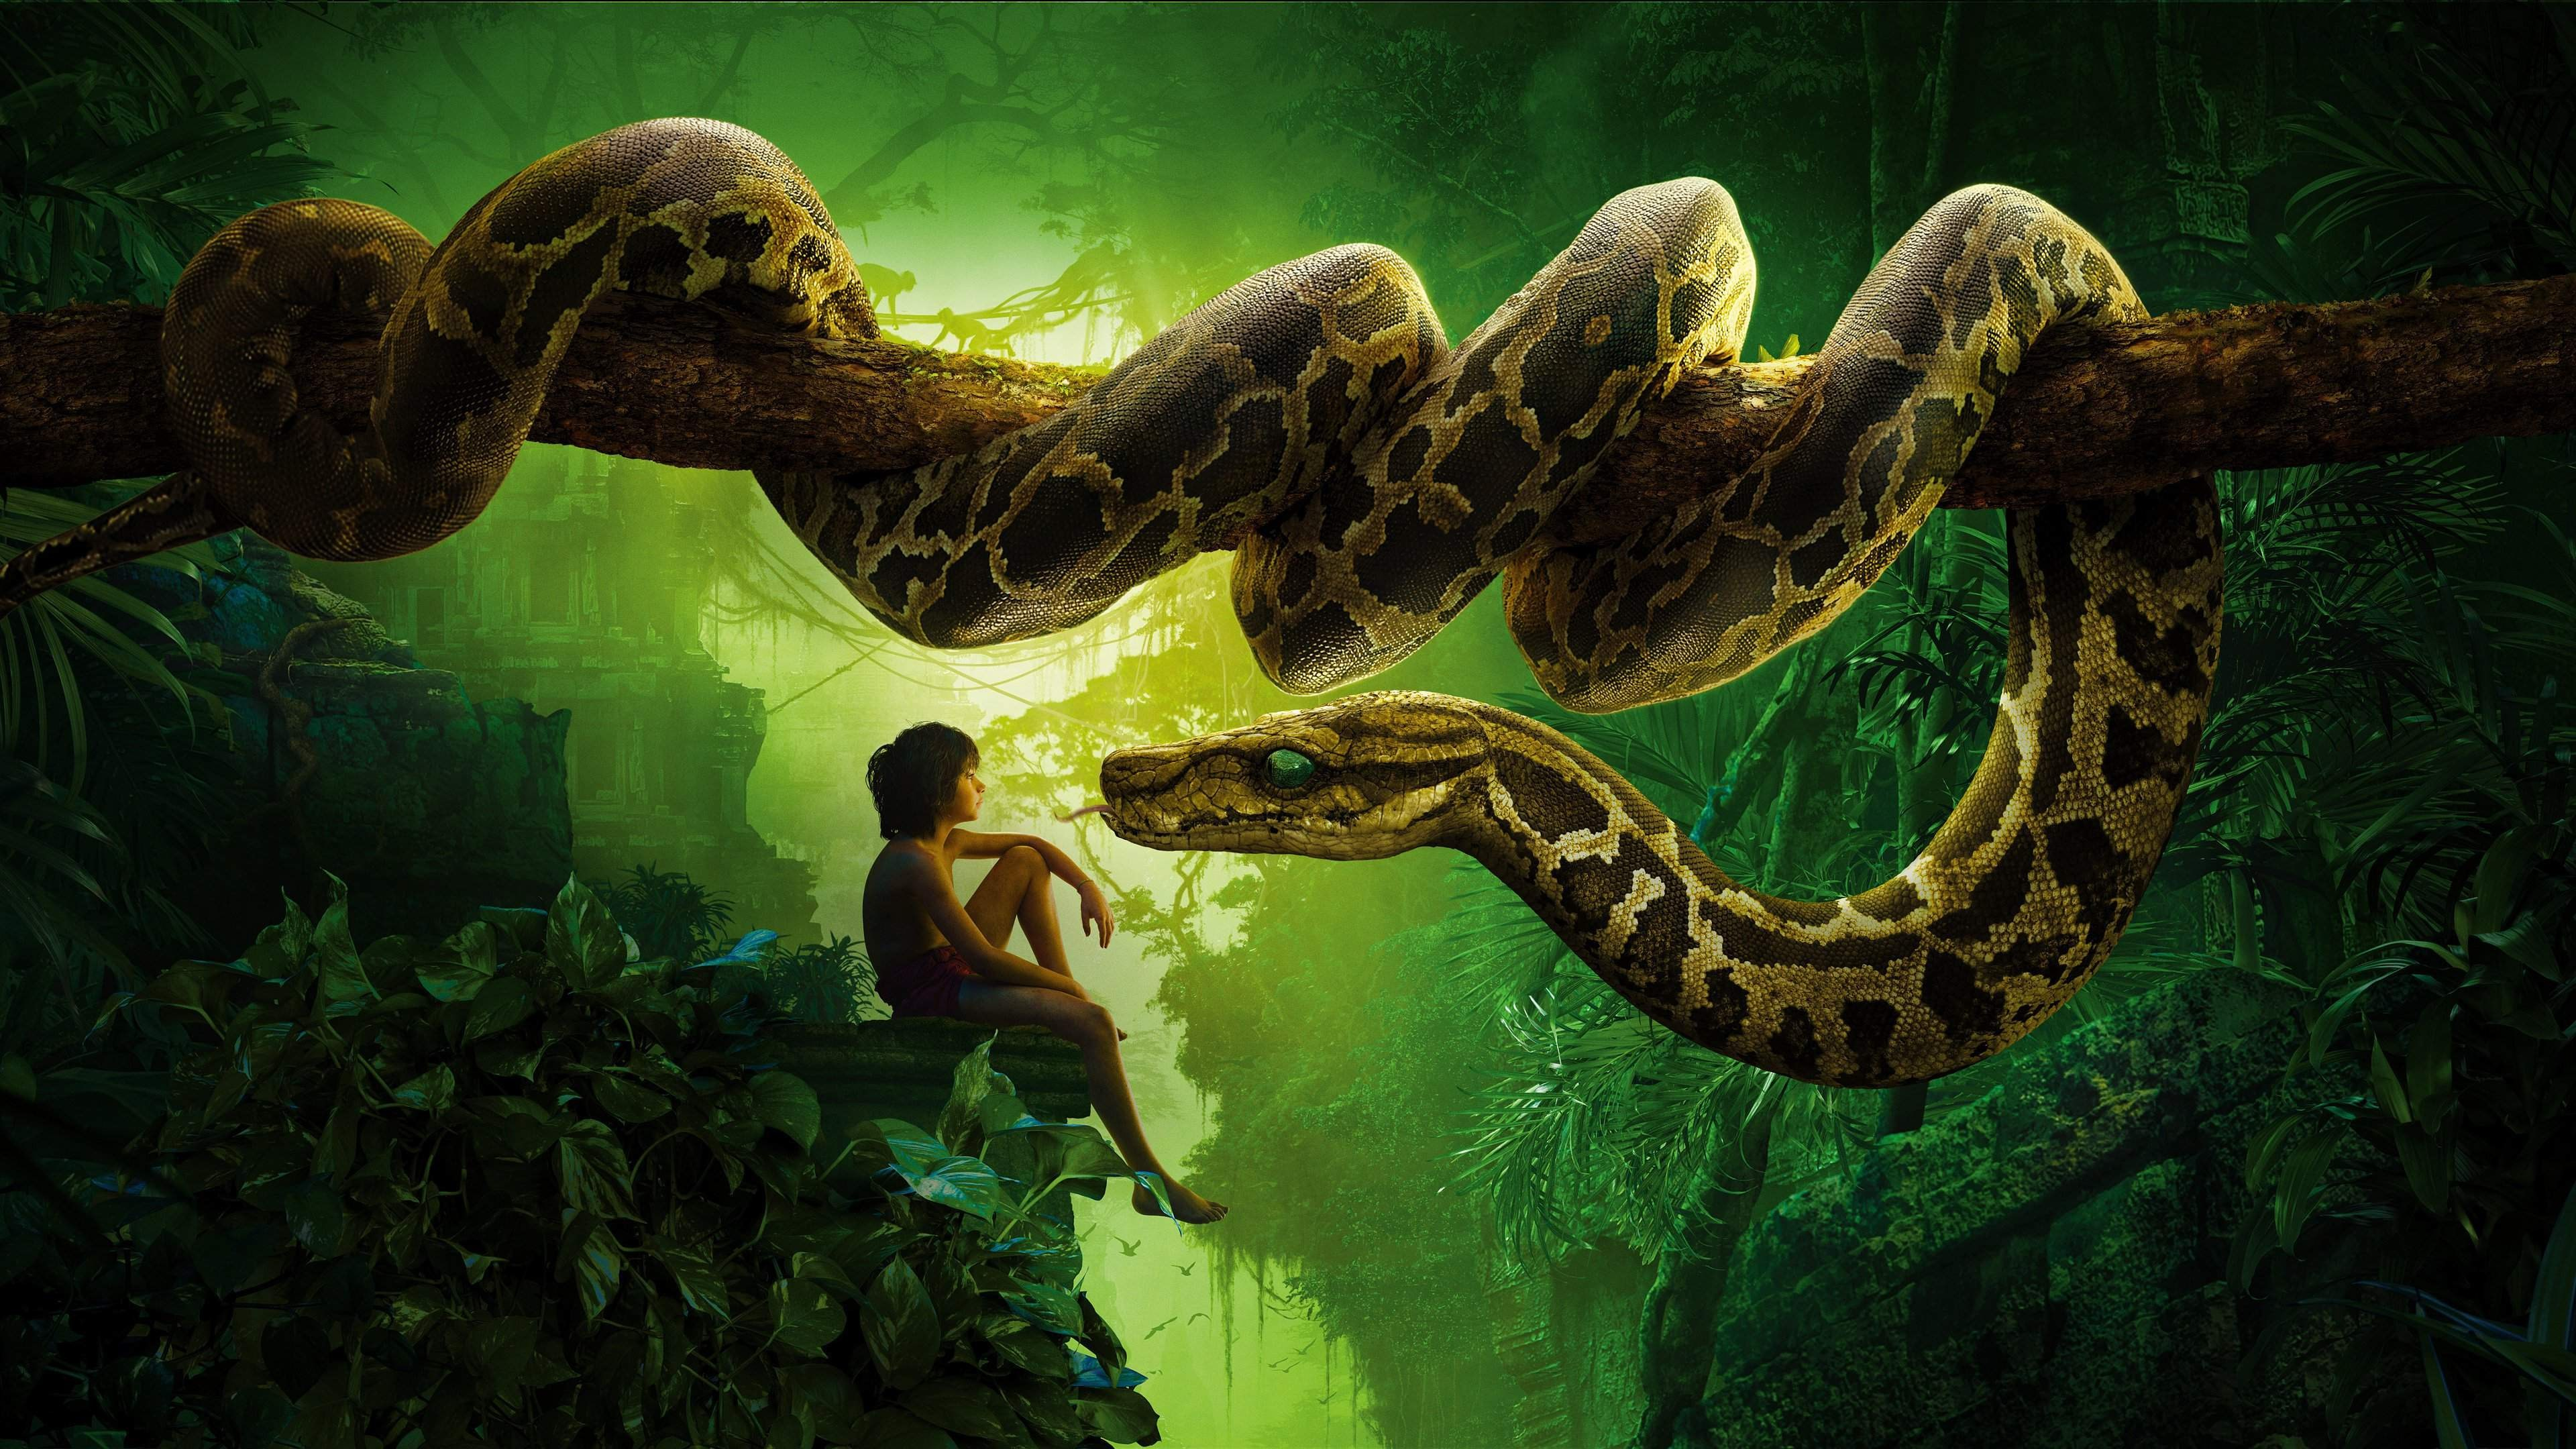 The Jungle Book Movie 4k Ultra Hd Wallpaper High Quality Walls